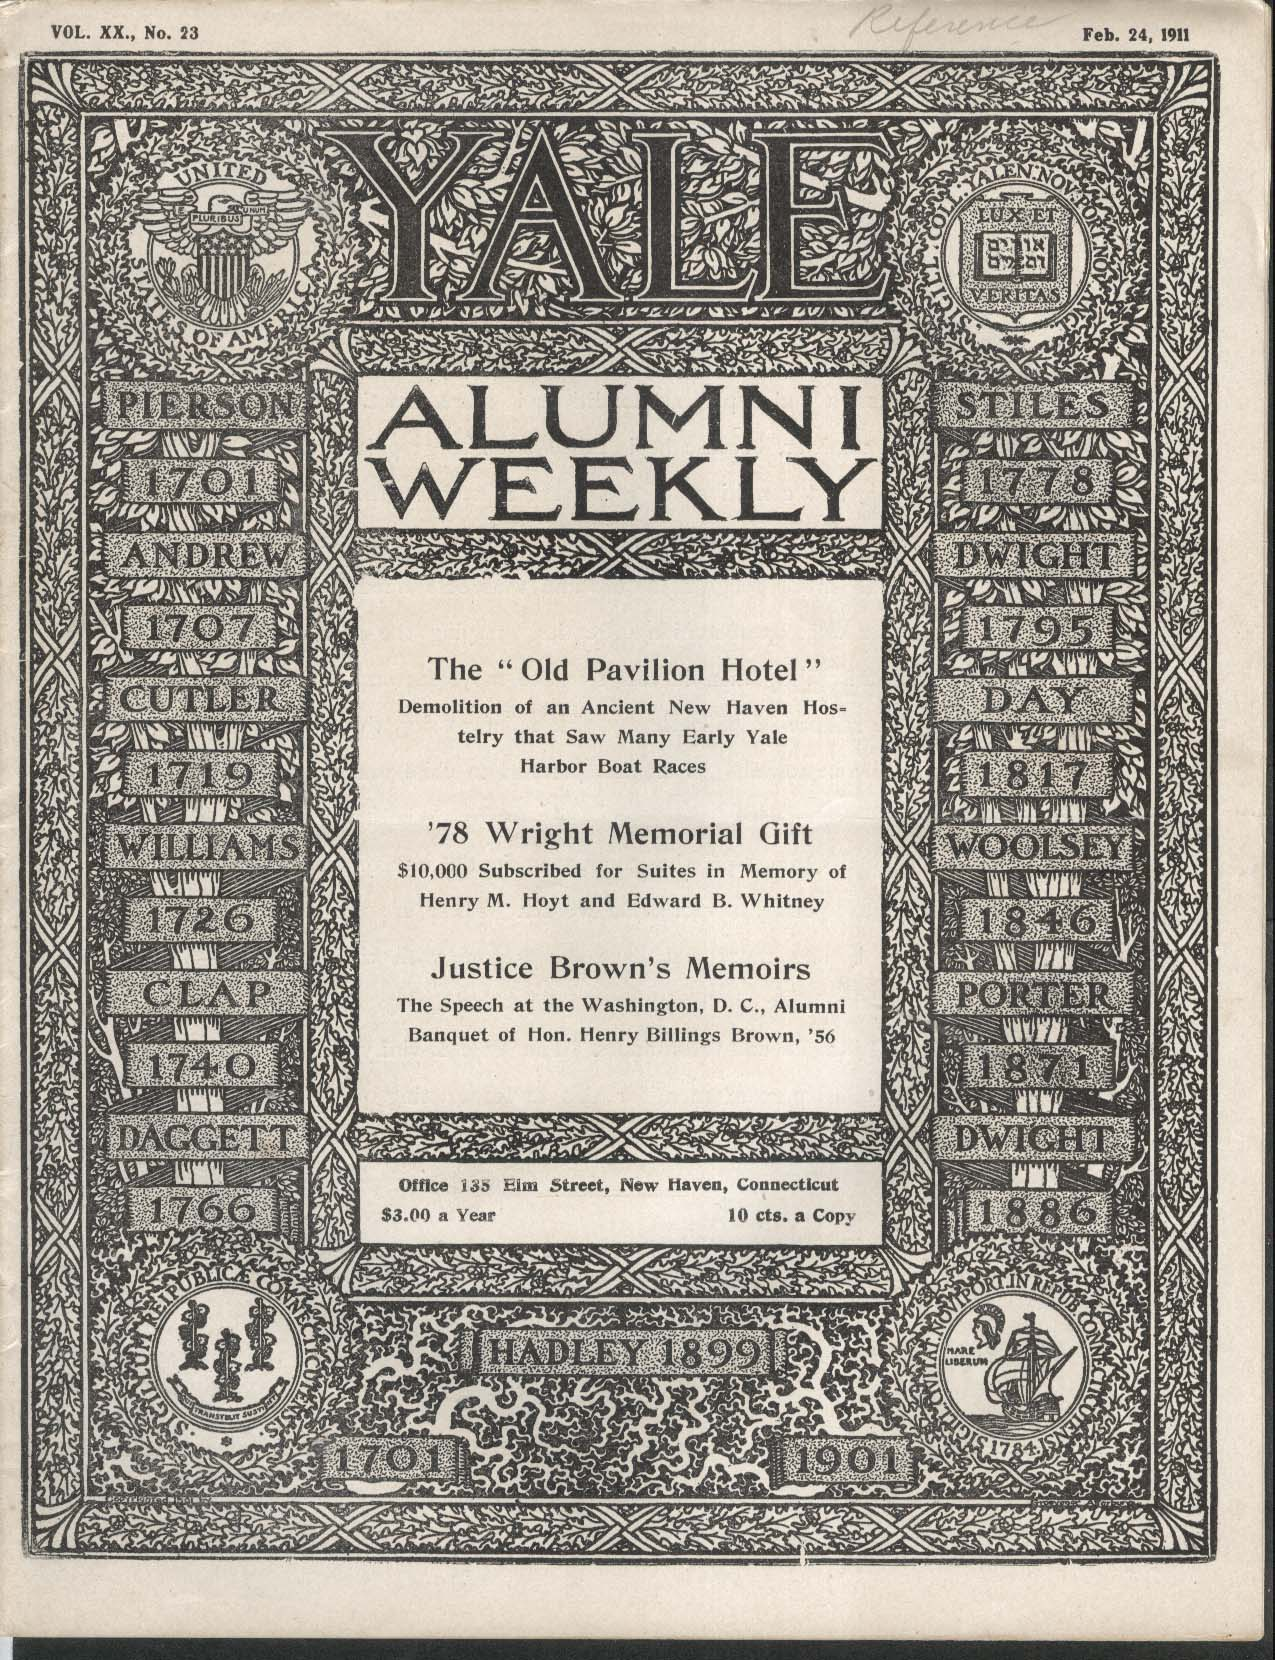 YALE ALUMNI WEEKLY Henry M Hoyt Edward B Whitney Justice Brown Memoirs 2/24 1911